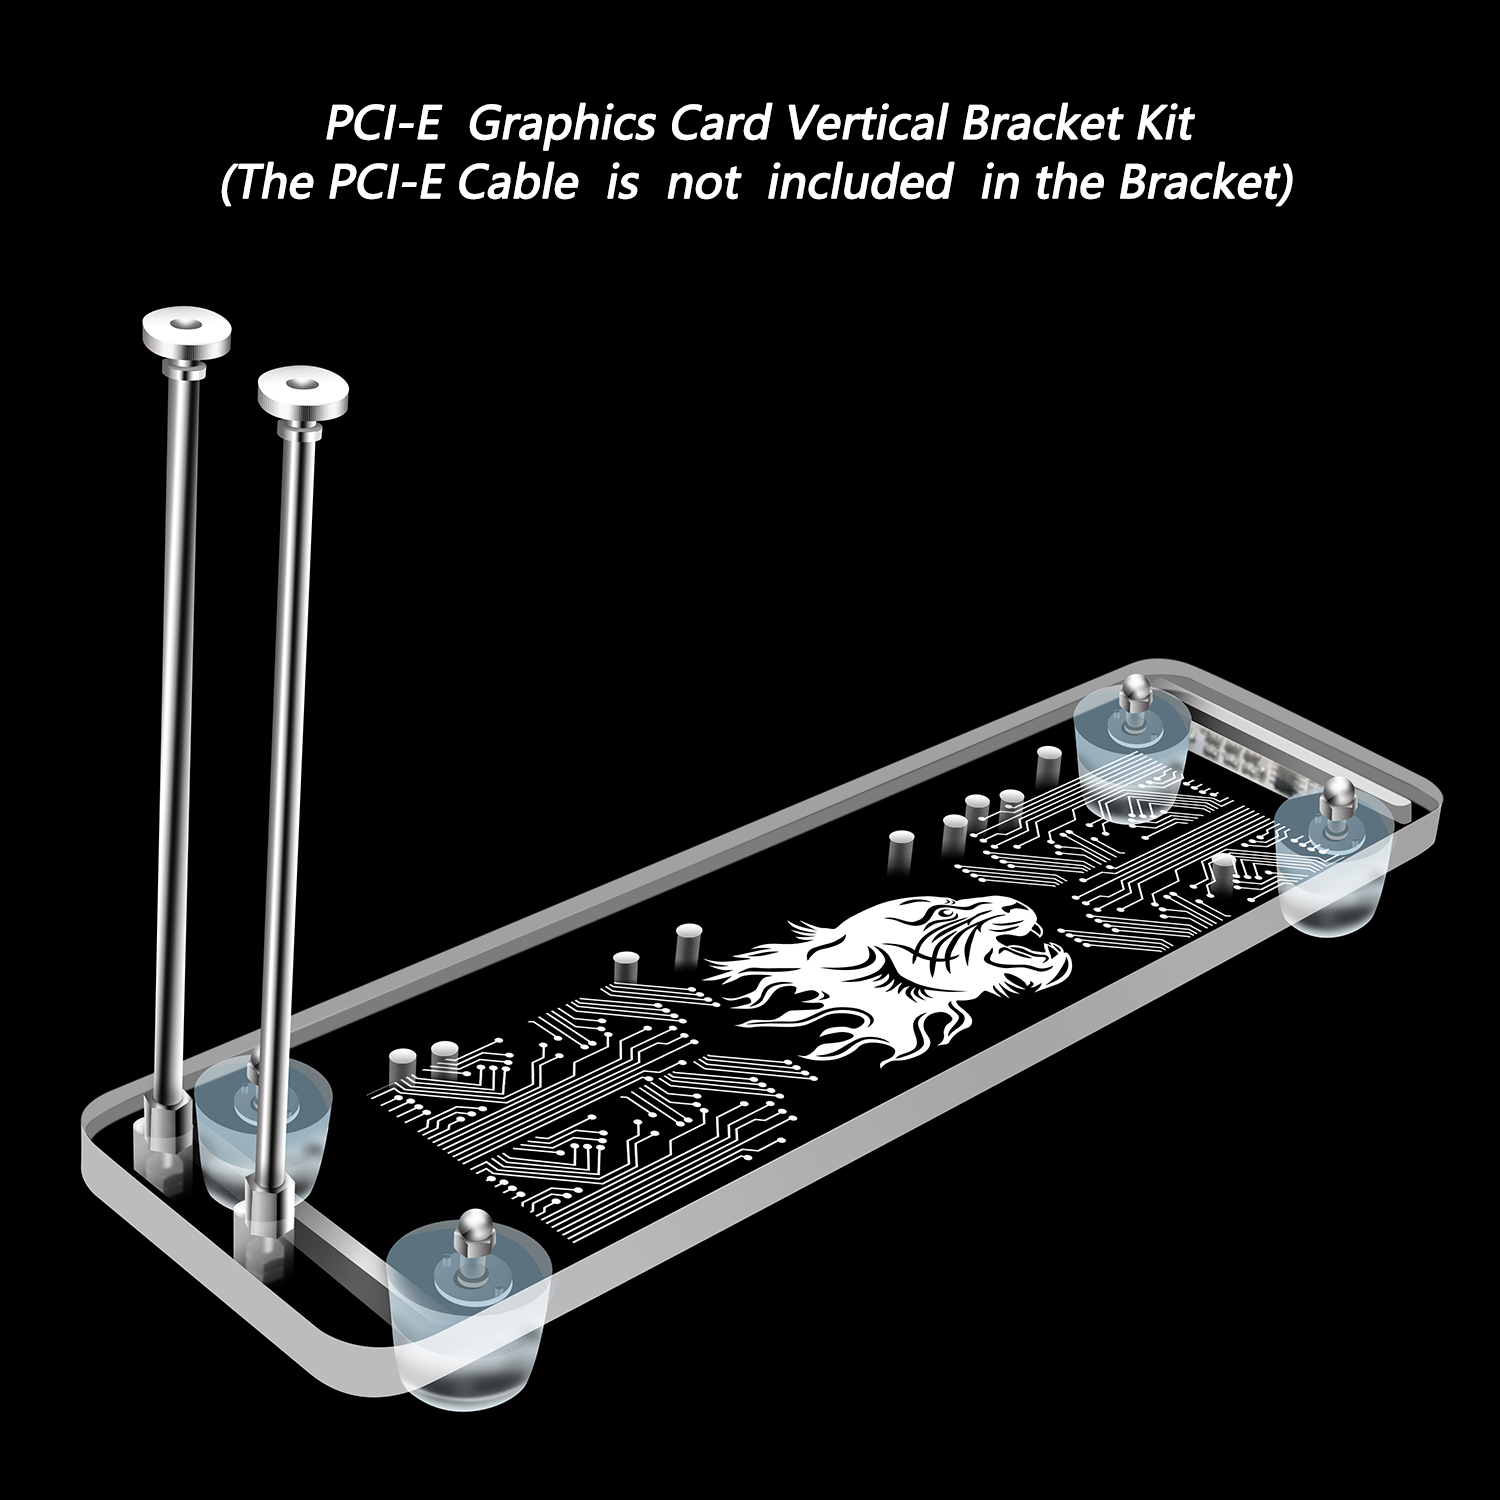 E 3.0 16X Graphics Card vertical kickstand//base with cable for DIY  ATX cas PCI